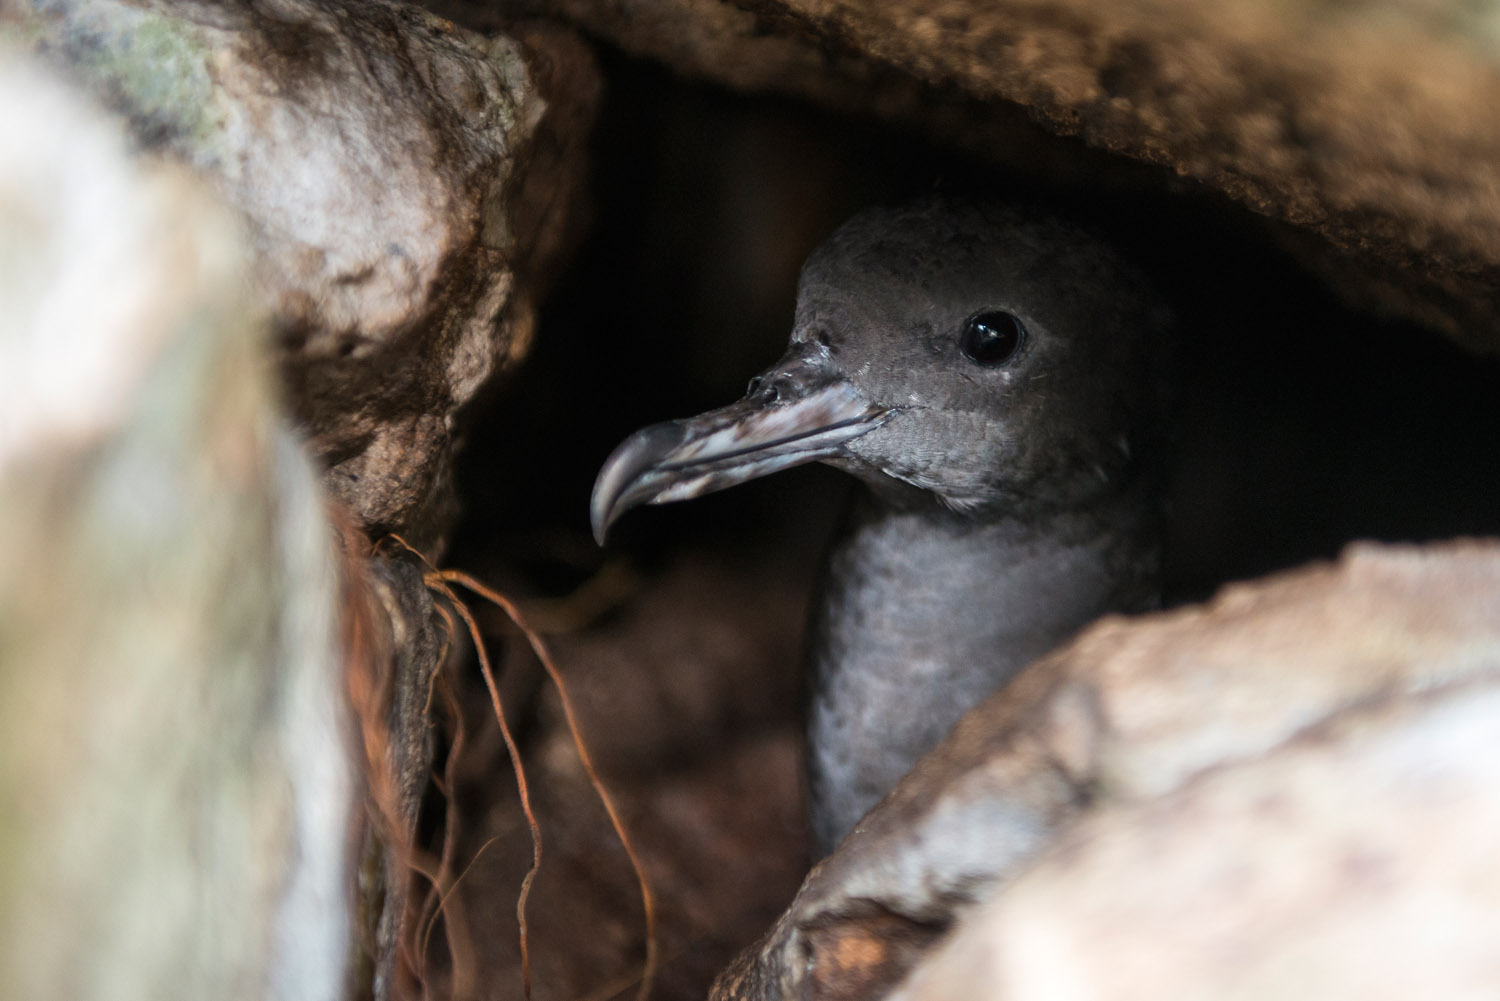 Wedge-tailed shearwater in rock burrow, Cousin Island Special Reserve, Seychelles